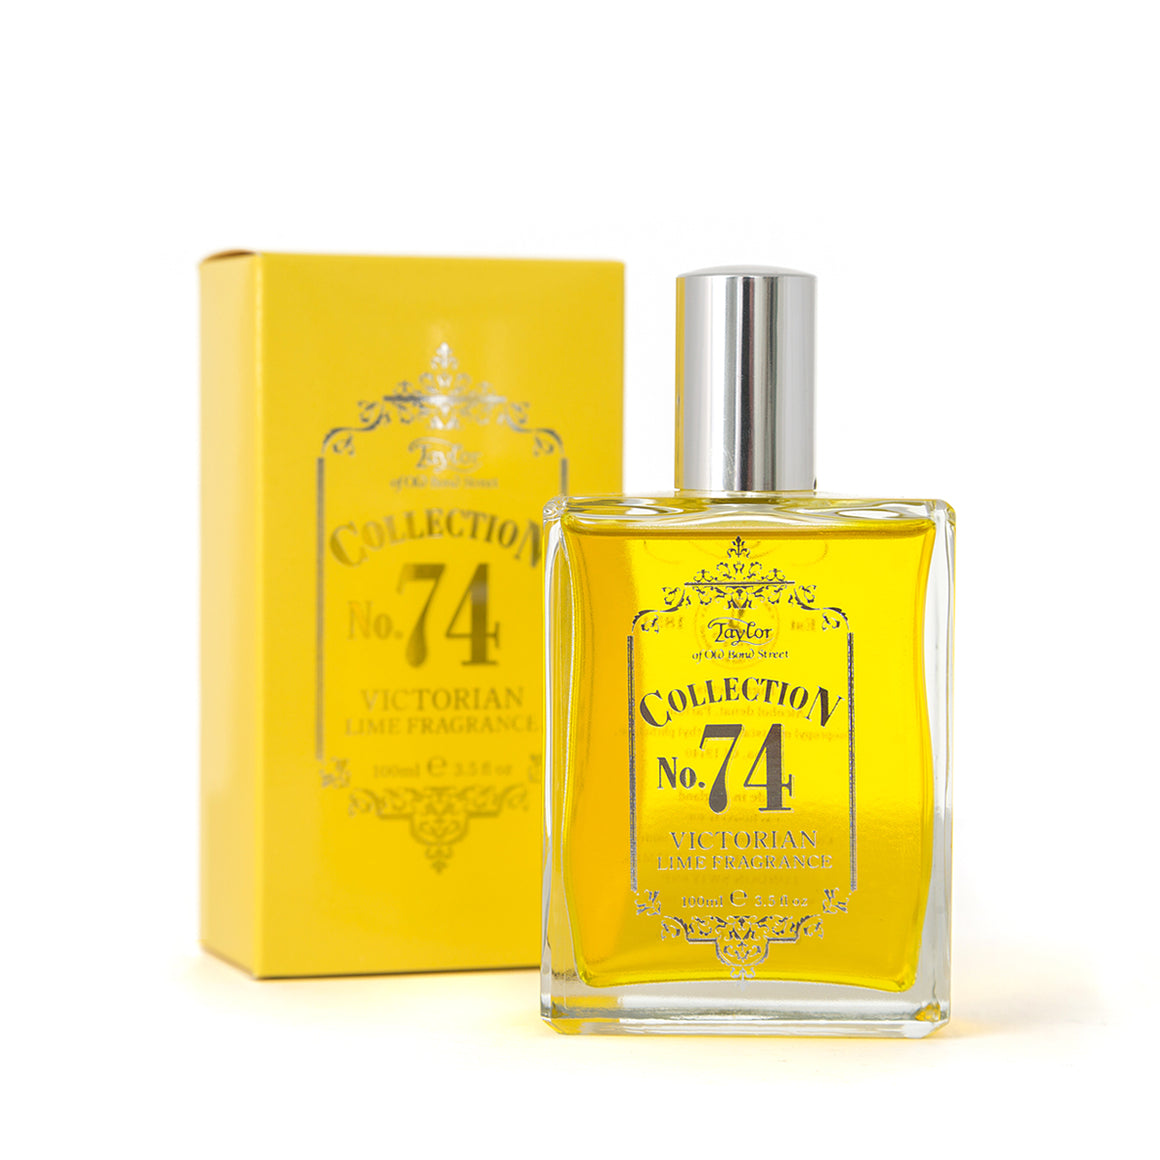 Taylor of Old Bond Street No. 74 Collection Victorian Lime Fragrance 100ml